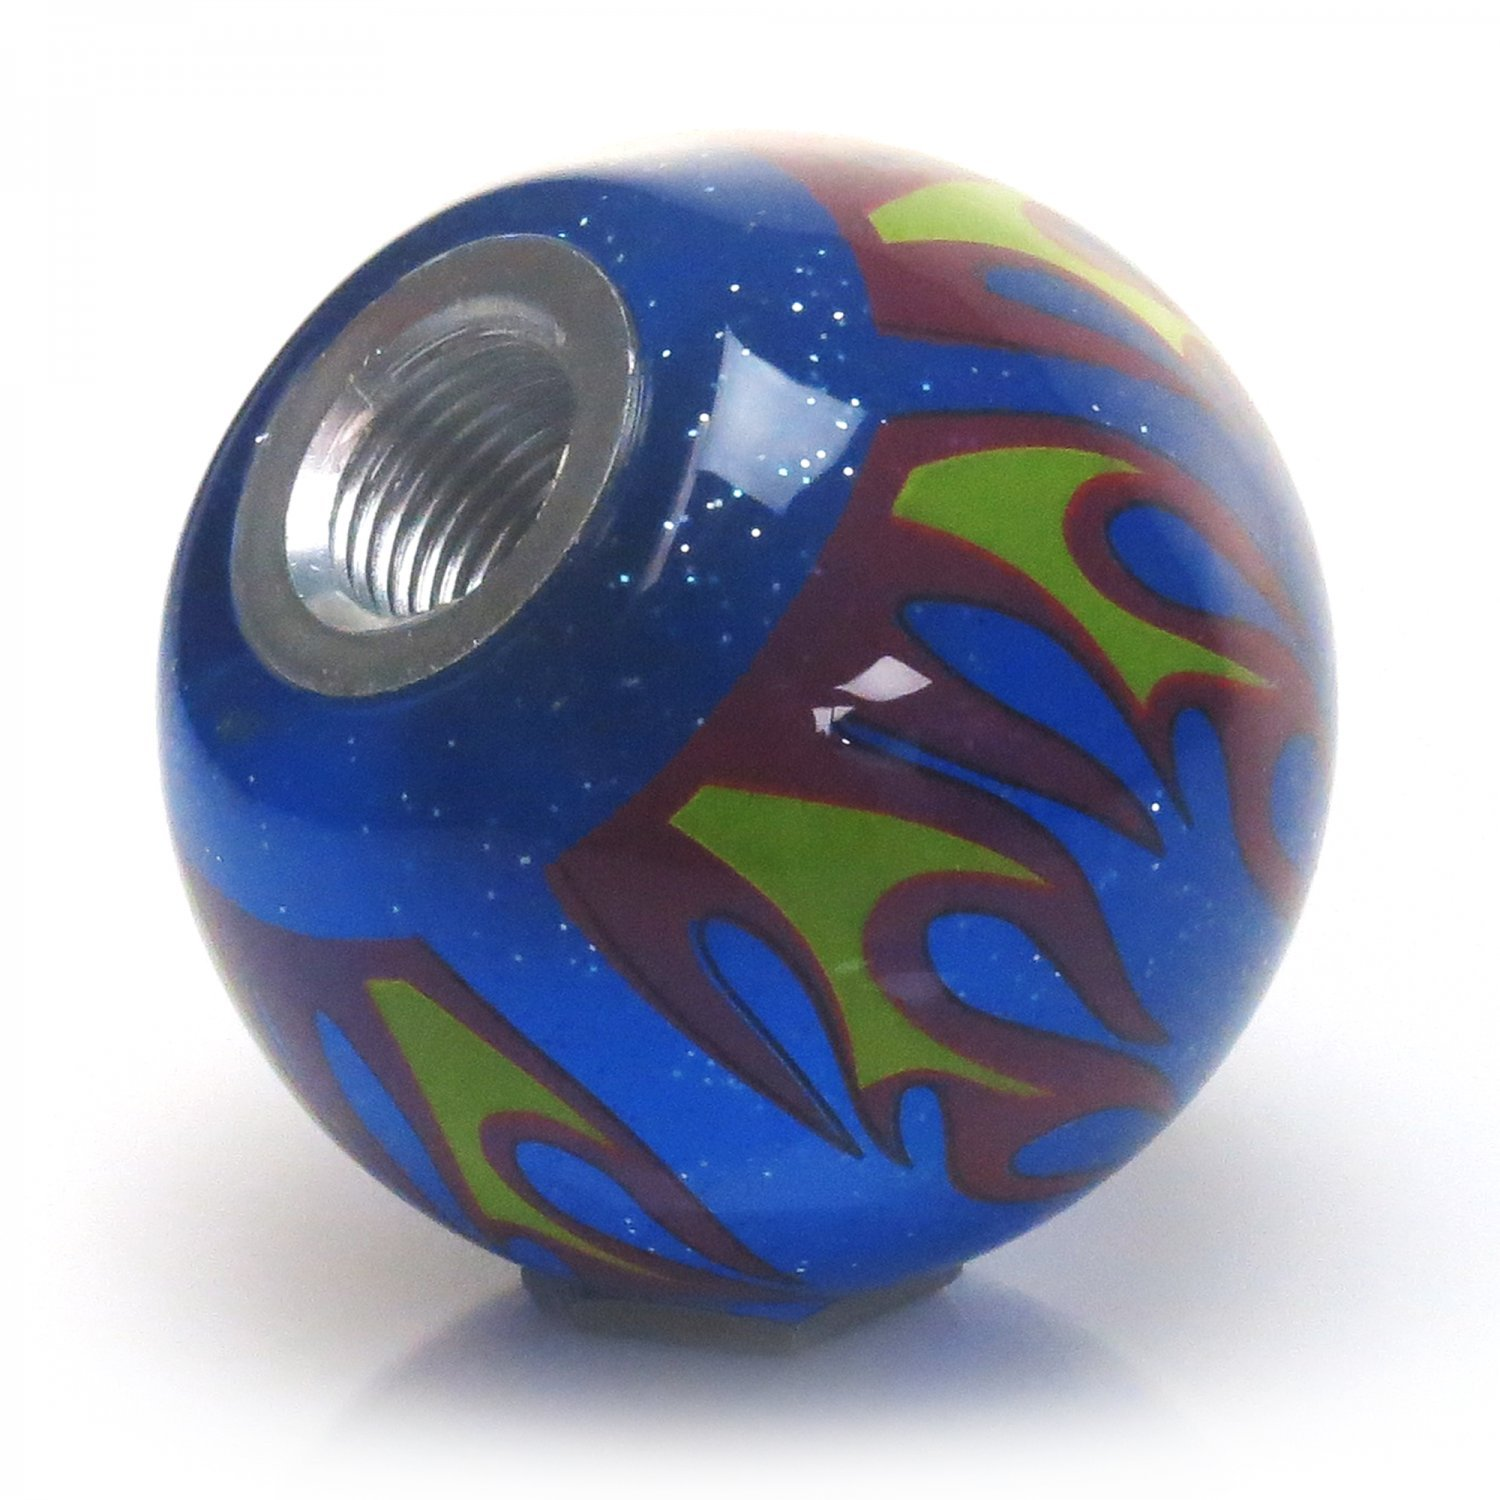 American Shifter 298674 Shift Knob Black VW Cog 1937 Blue Flame Metal Flake with M16 x 1.5 Insert